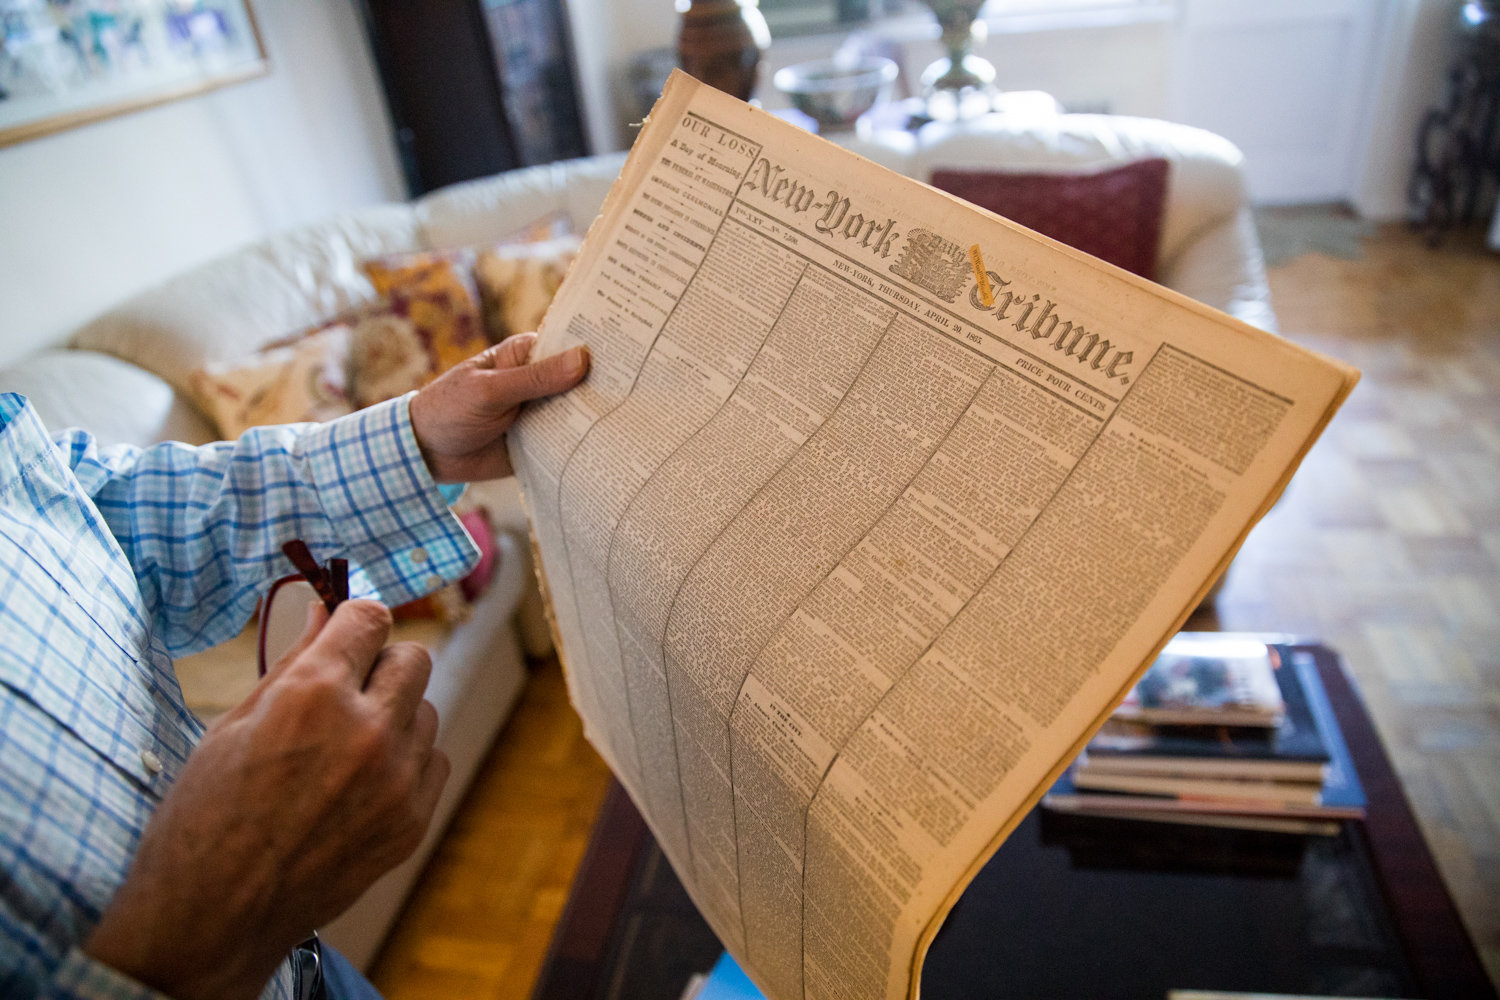 Among Ron Rubin's extensive newspaper collection is a copy of the New York Tribune from April 20, 1865, five days after Abraham Lincoln's assassination.